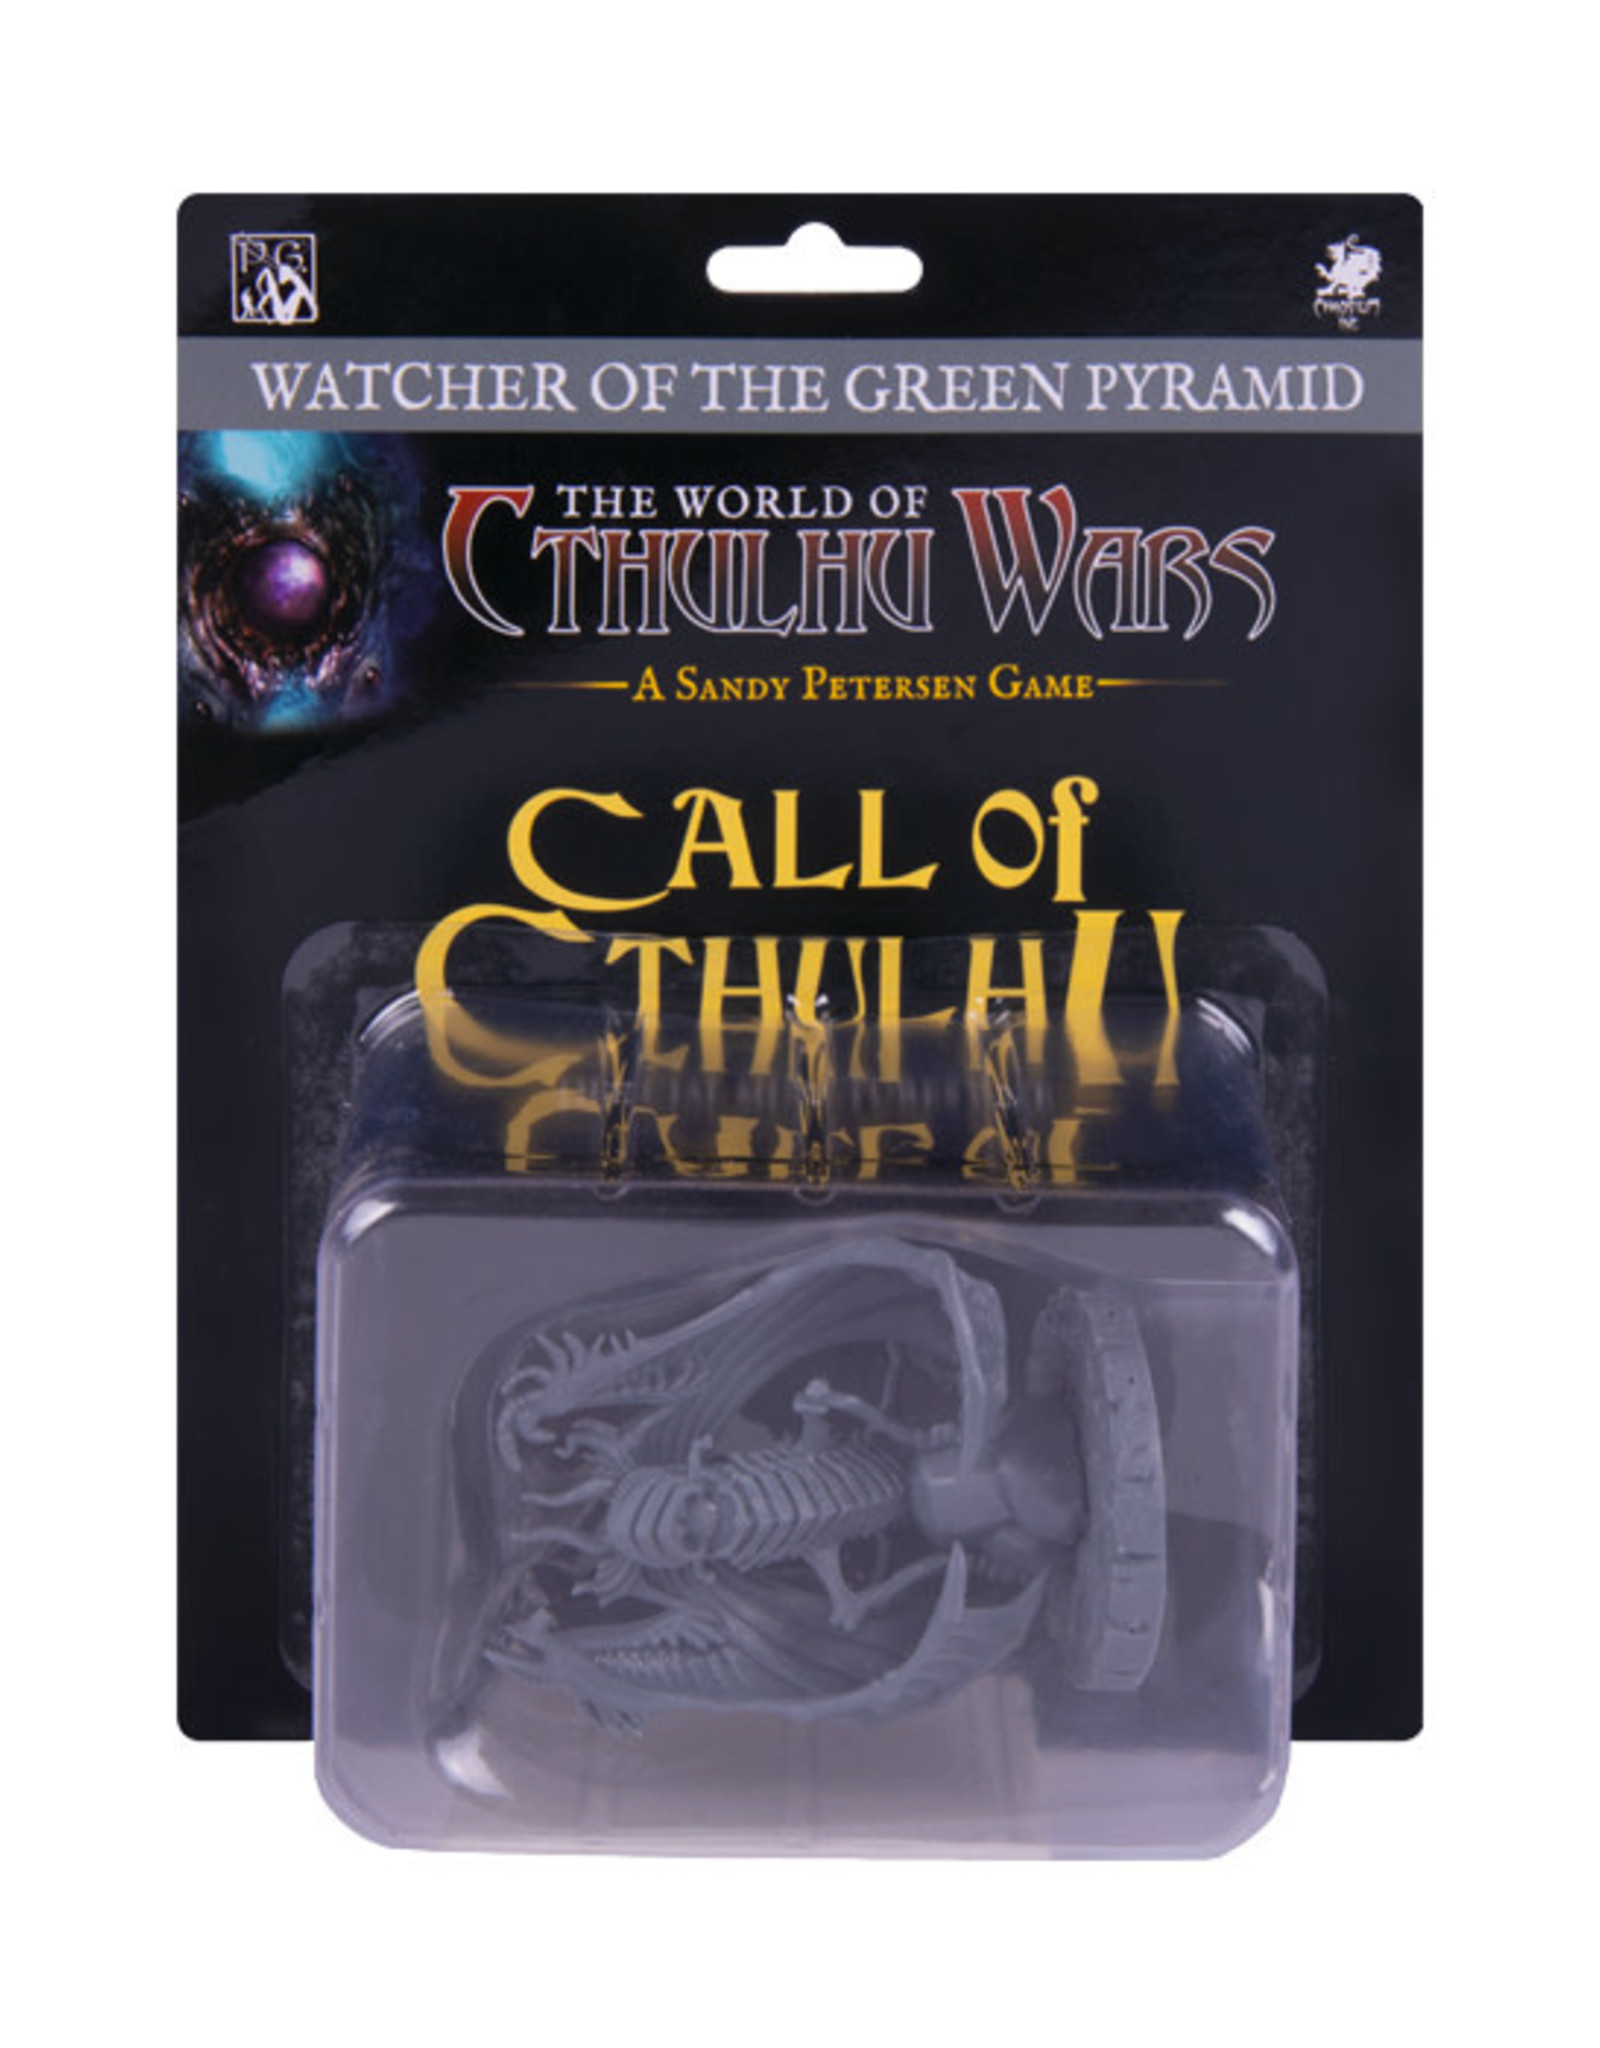 Call of Cthulhu: Miniature - Watcher of the Green Pyramid